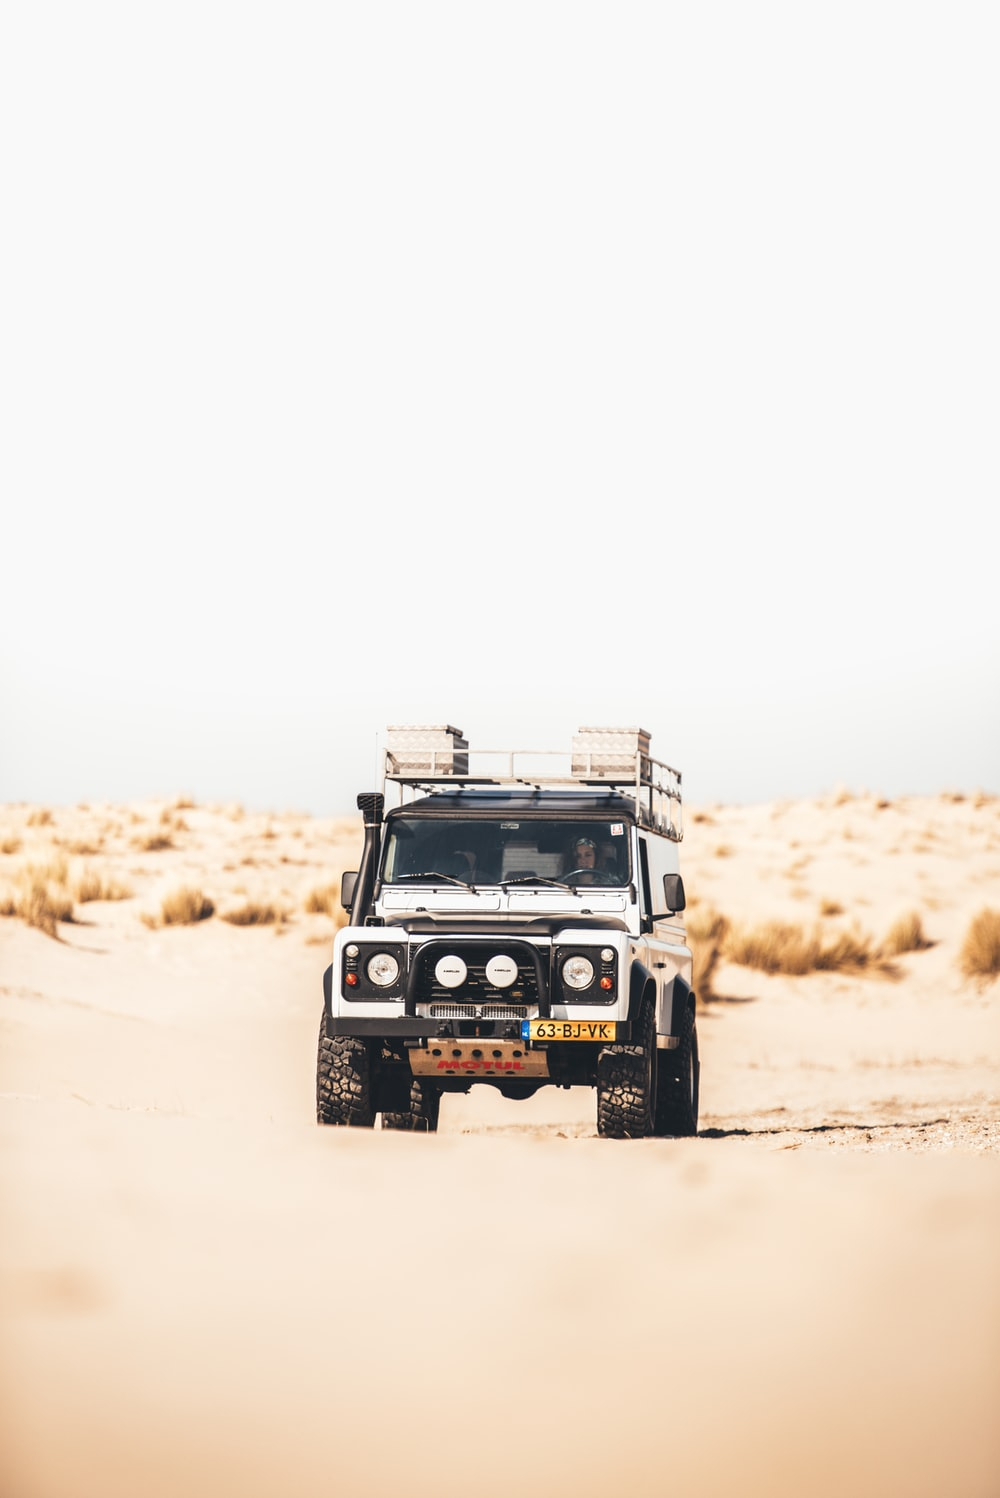 tilt shift photo of a white vehicle passing through sand dunes surrounded by grass